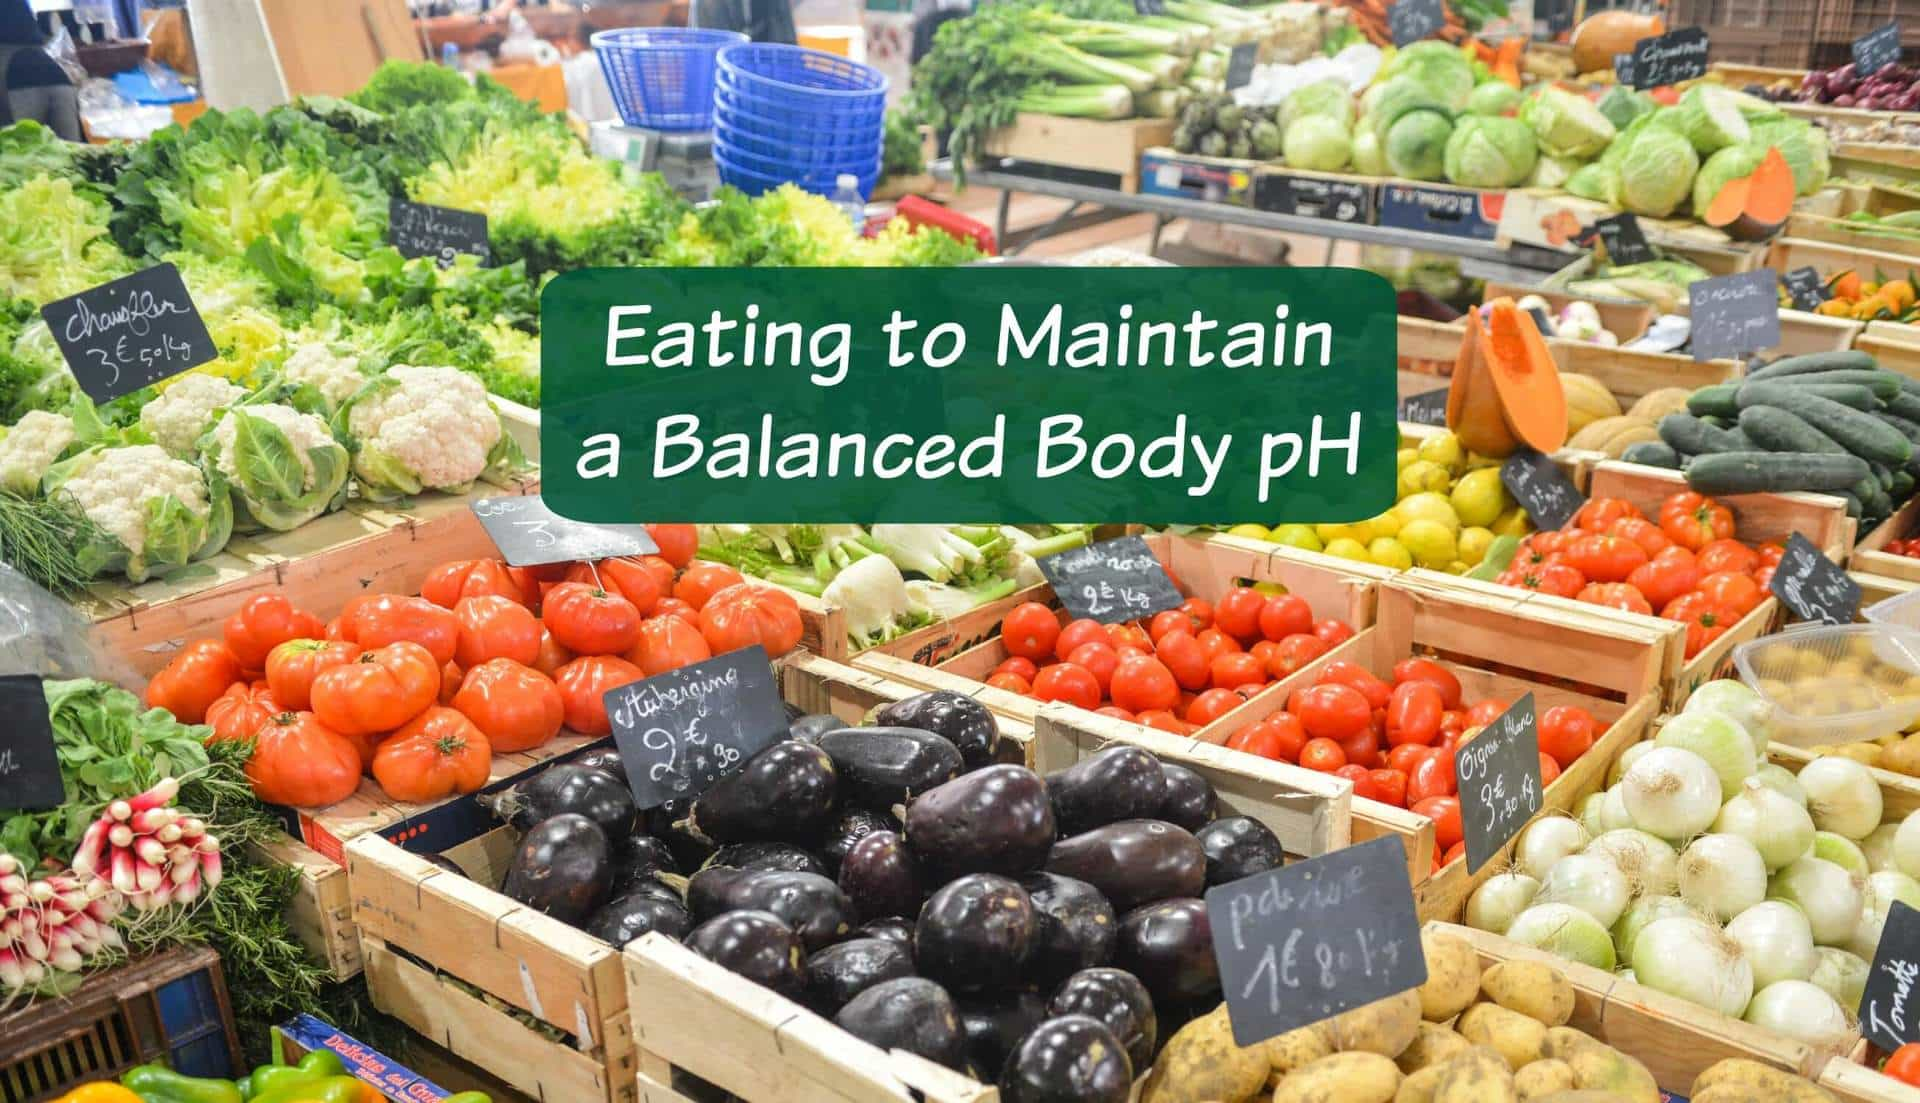 It's important to maintain a normal human body ph level. Diseases thrive in an acidic environment so an alkaline diet may improve health.